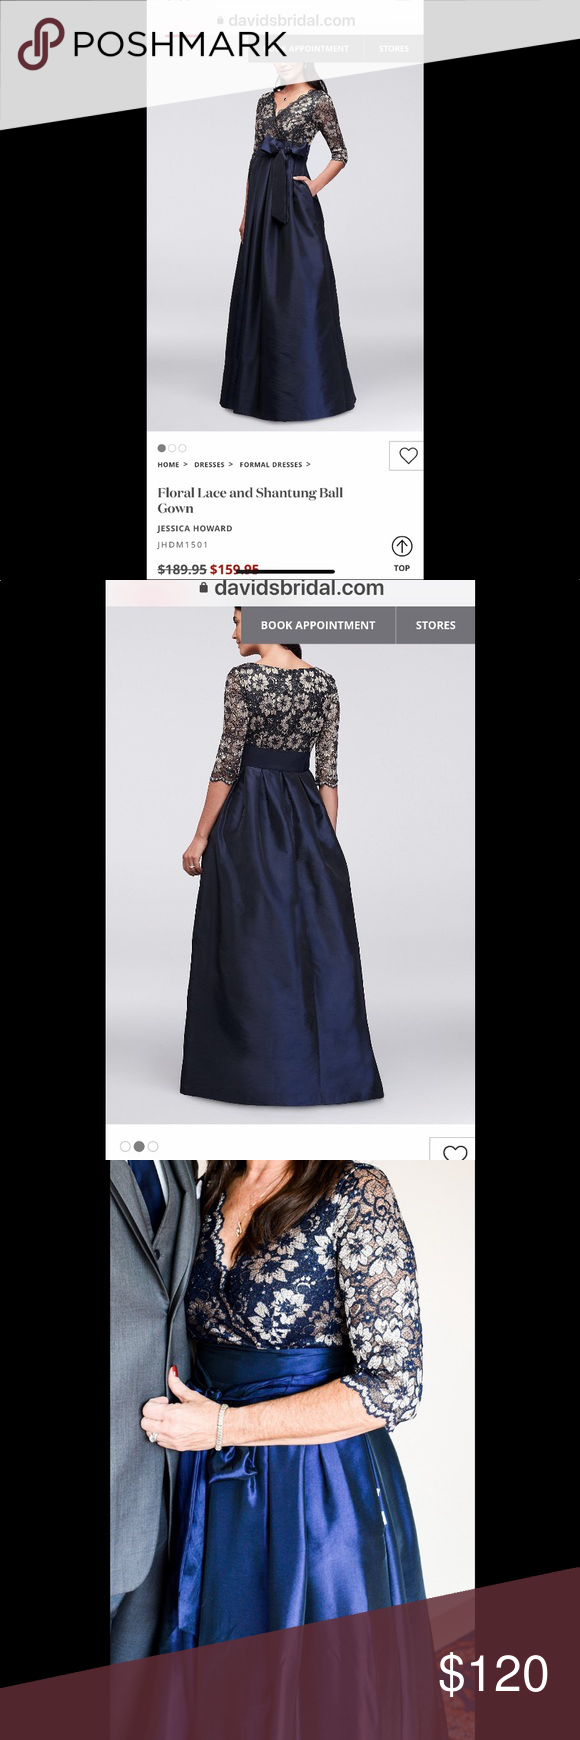 8ba3e017a2a Jessica Howard Floral Lace and Shantung Ball Gown Navy ball gown with  floral lace top and shantung skirt with pockets. This is a beautiful floor  length gown ...